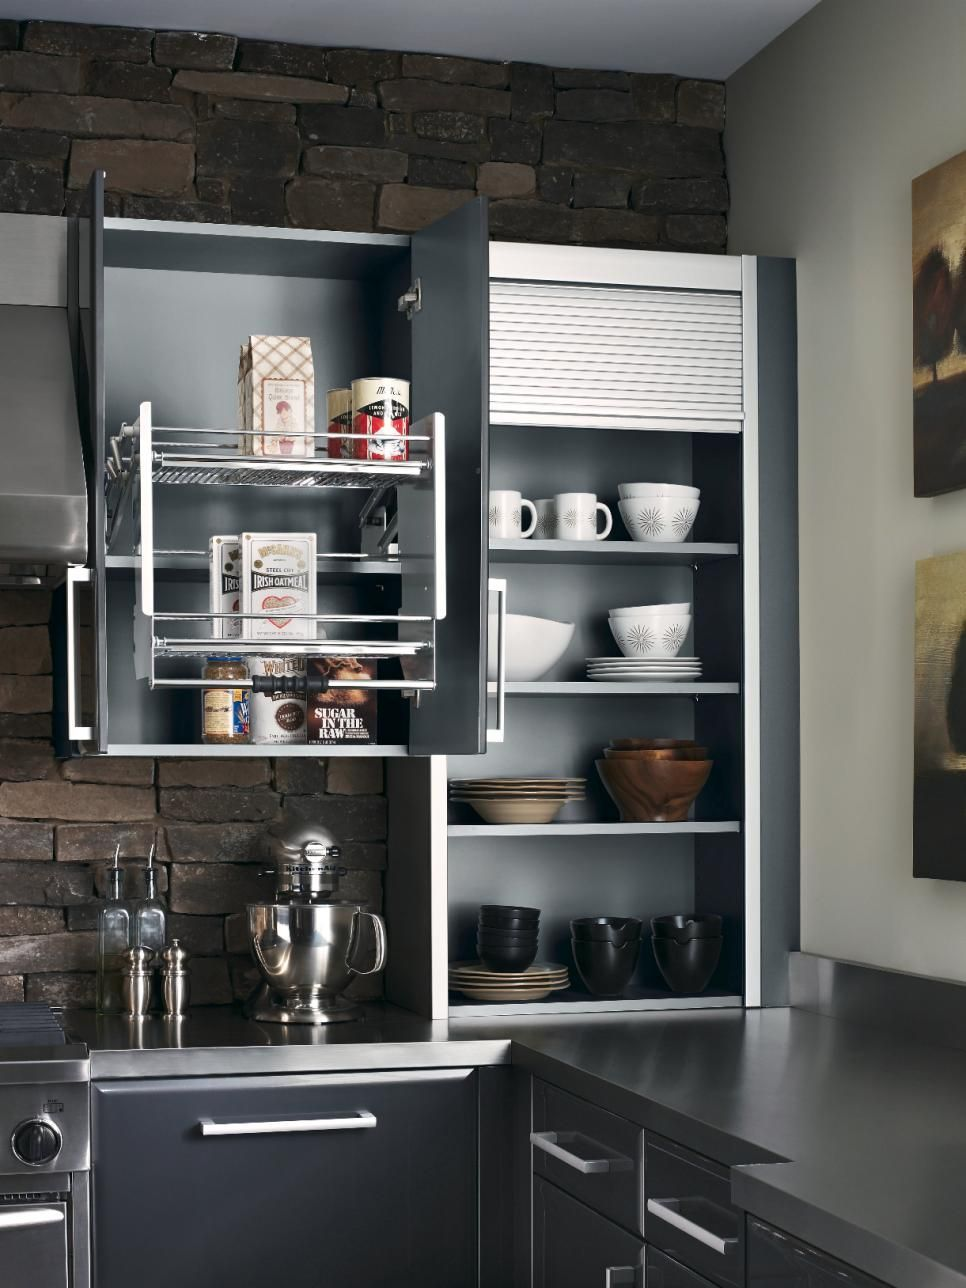 Overhead Cabinets Seem Like A Dream Until You Have To Pull Out A Step Stool Every Time You Want Kitchen Cabinets Kitchen Wall Storage Kitchen Cabinet Storage